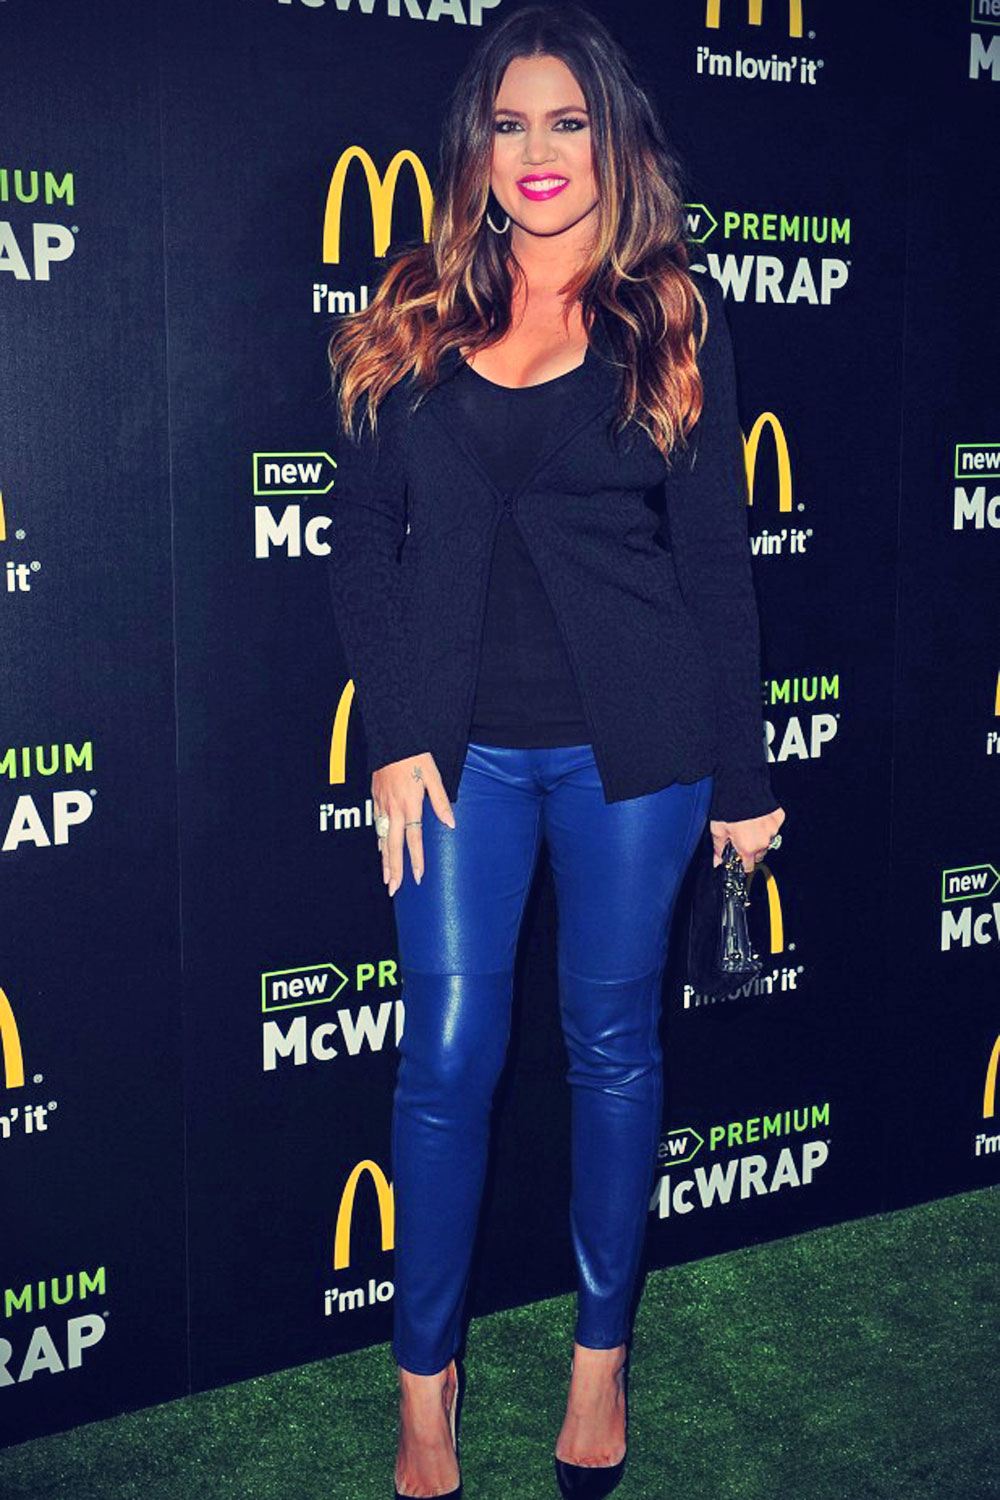 Khloe Kardashian attends the launch of McDonald's Premium McWrap